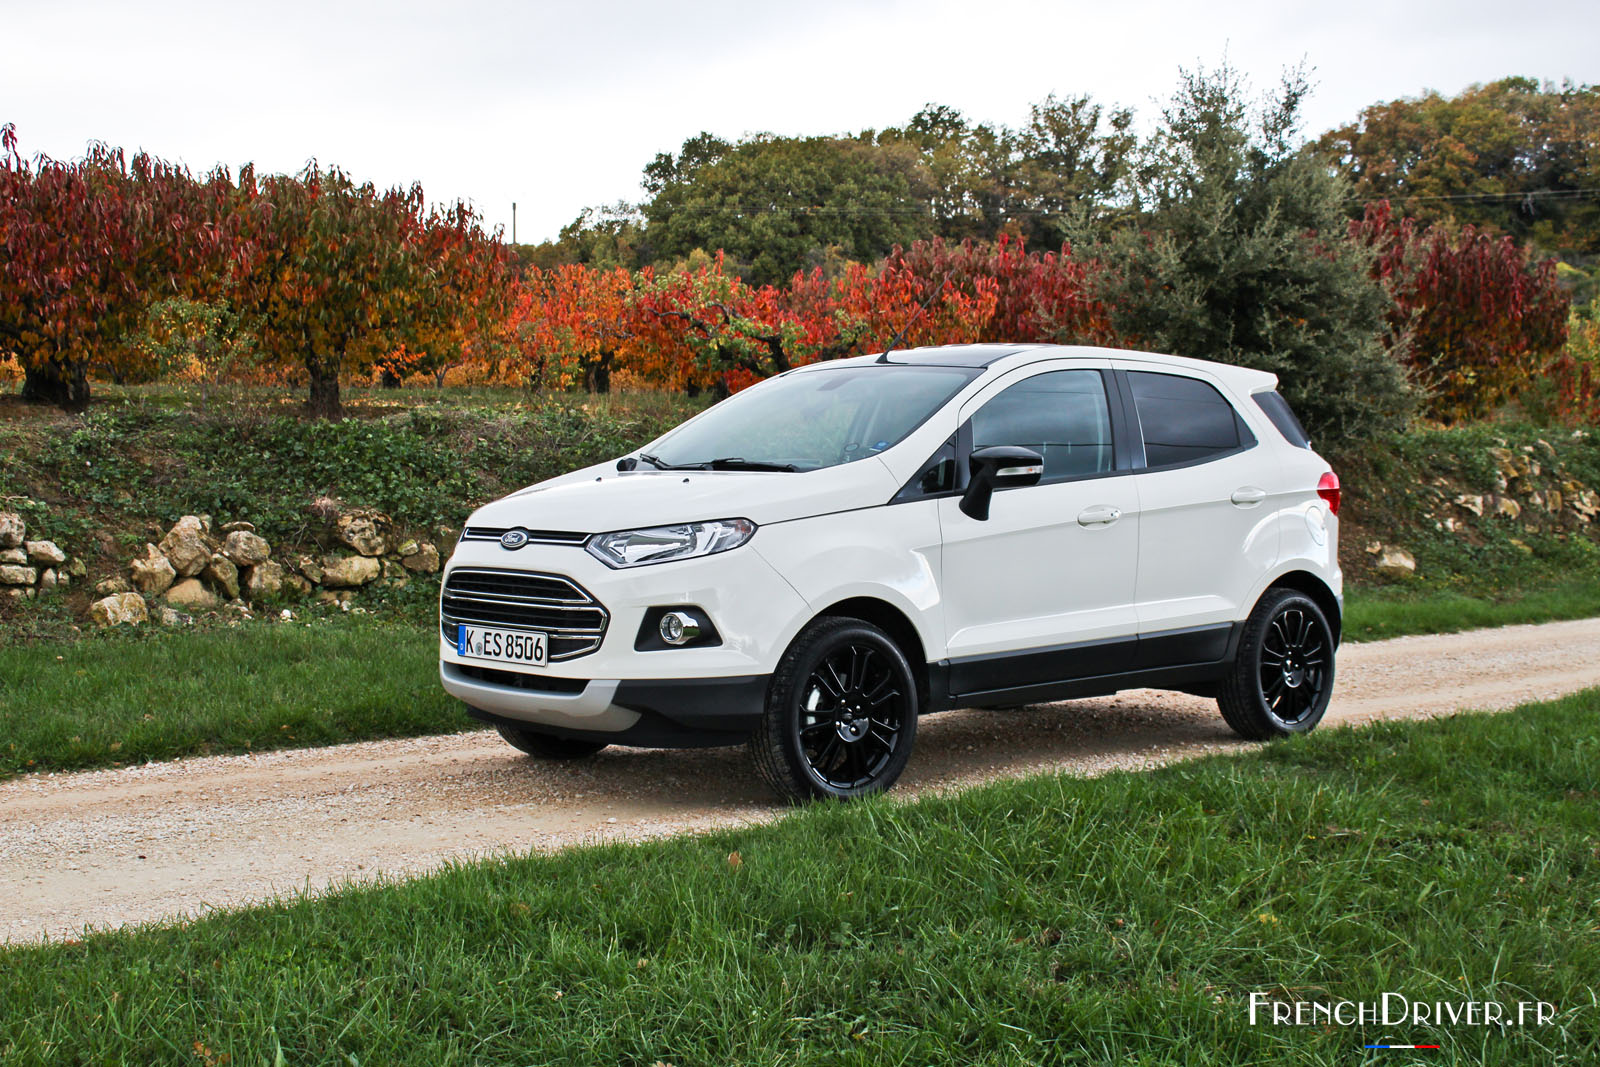 essai du ford ecosport l 39 outsider des petits crossovers french driver. Black Bedroom Furniture Sets. Home Design Ideas